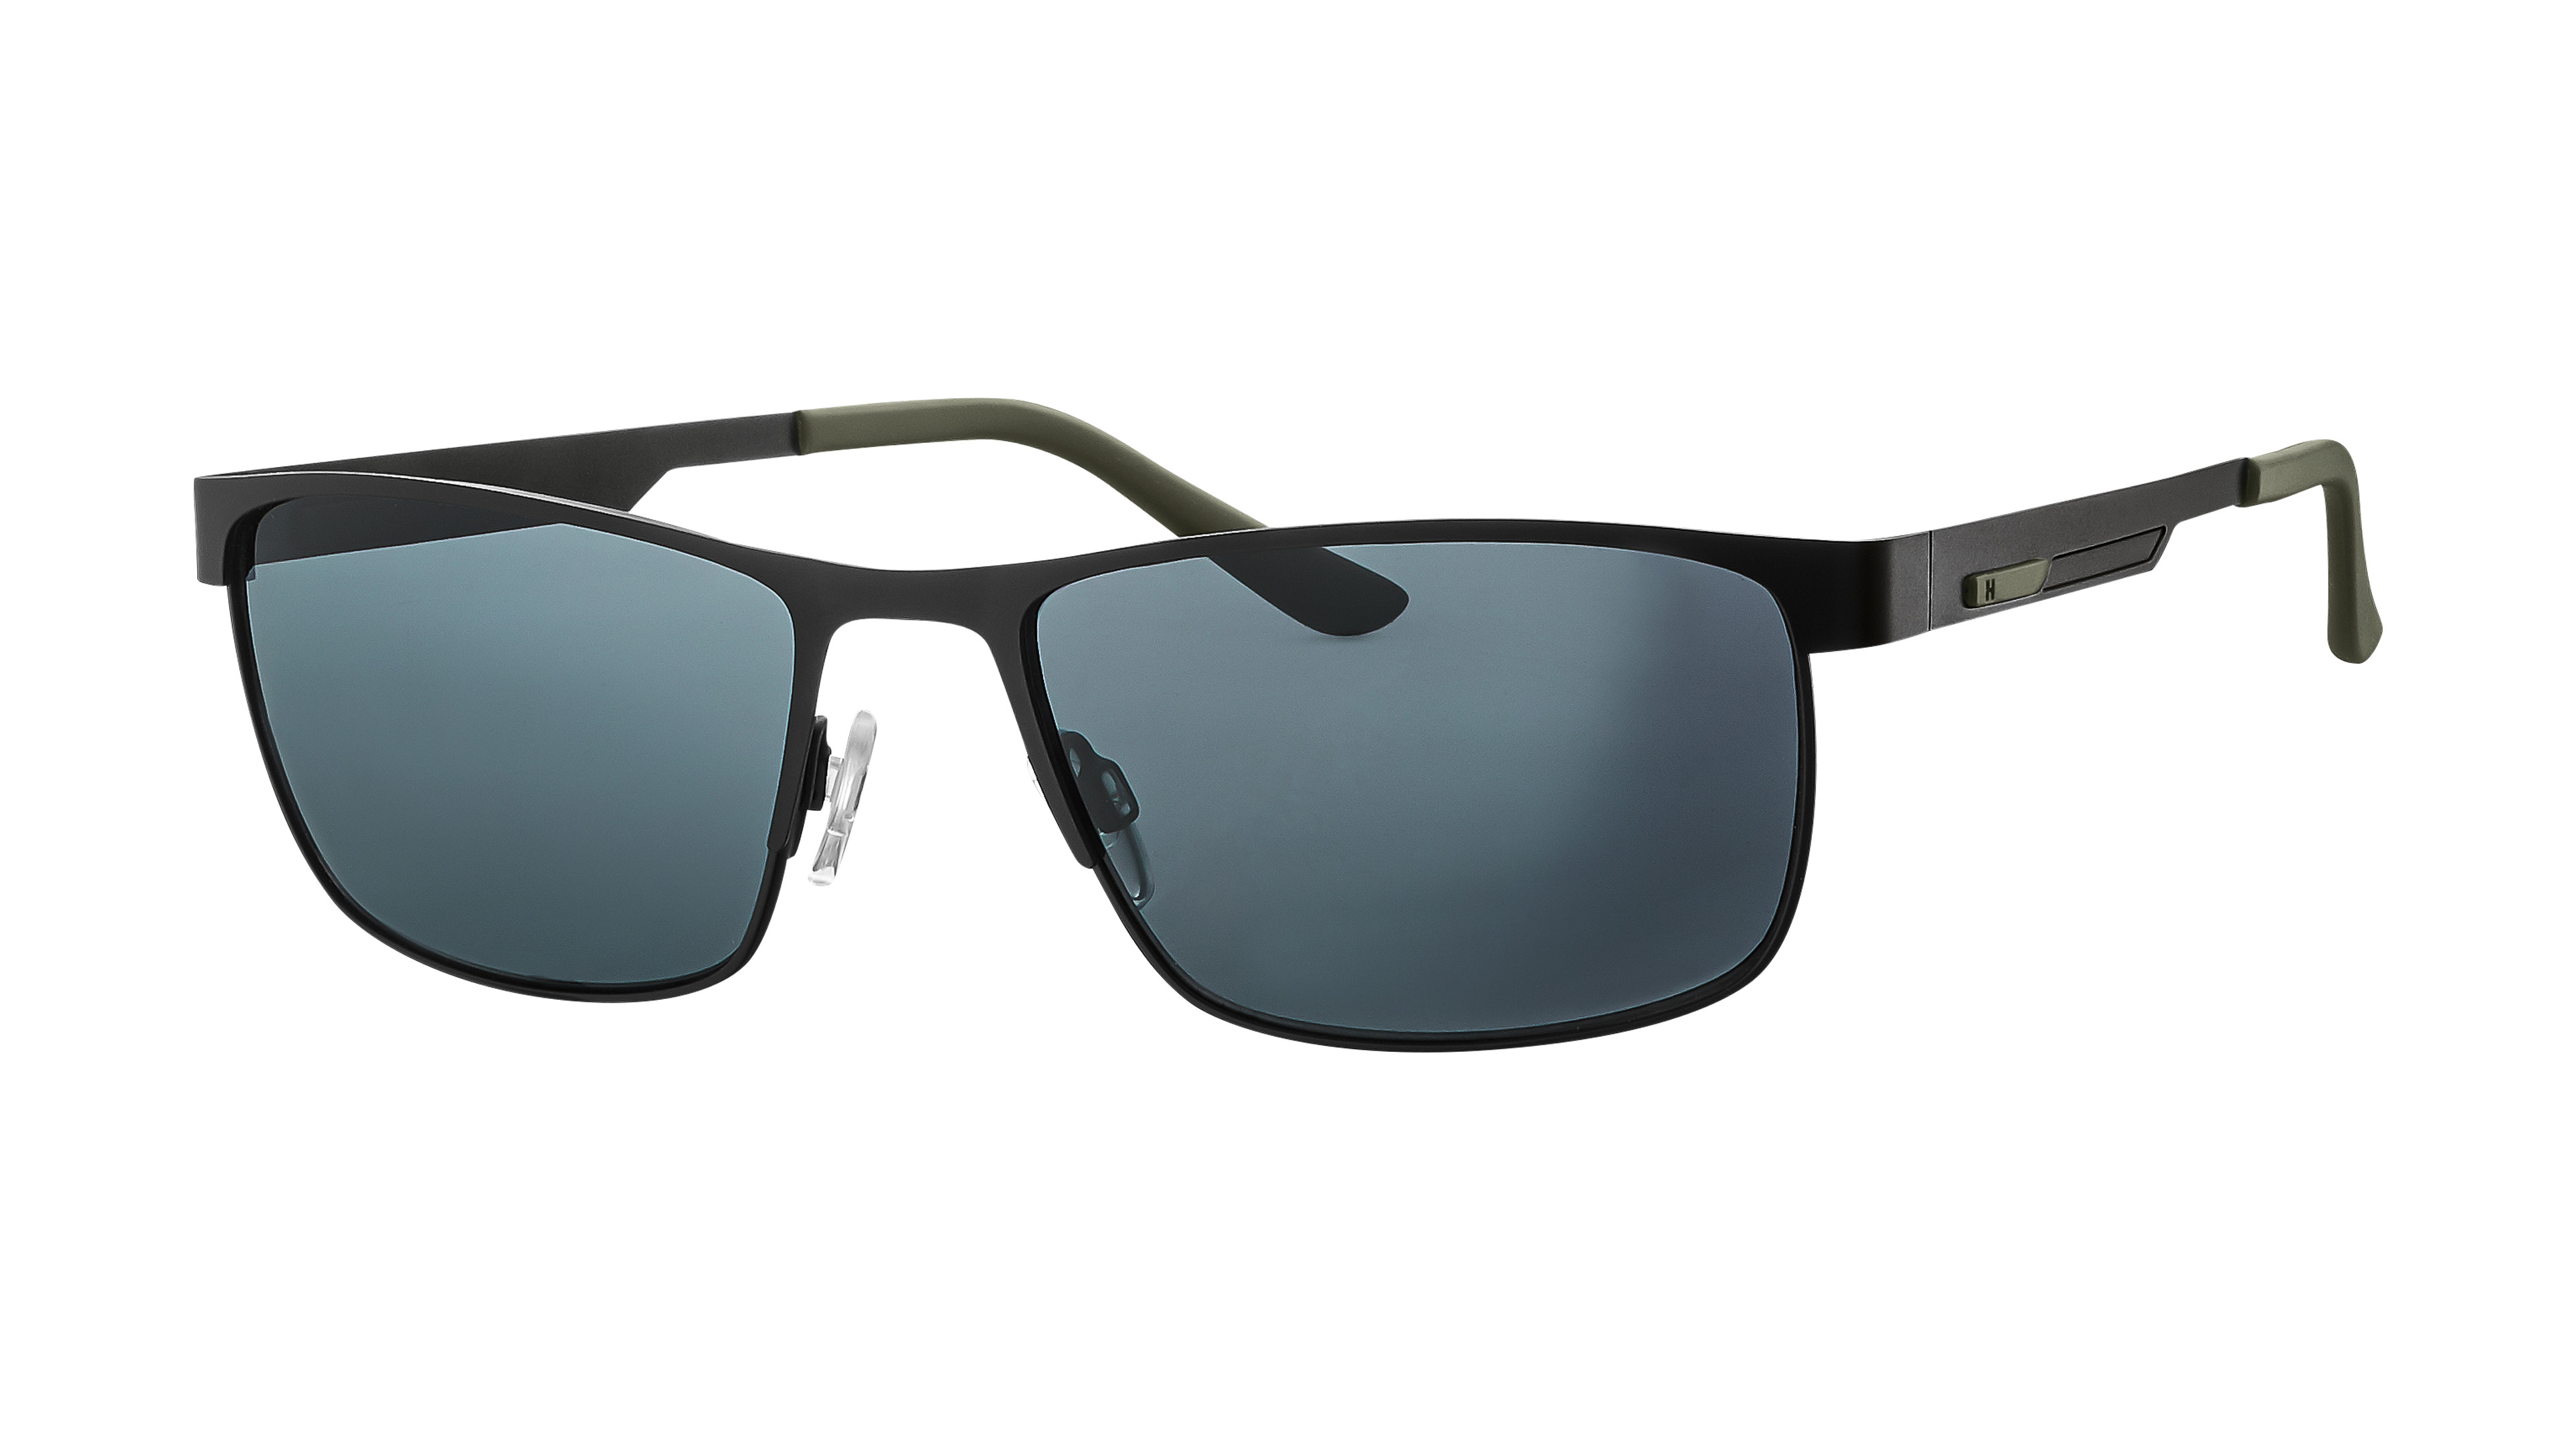 4048347953197-front-ex_angle-humphreys-sonnenbrille-585211-151030